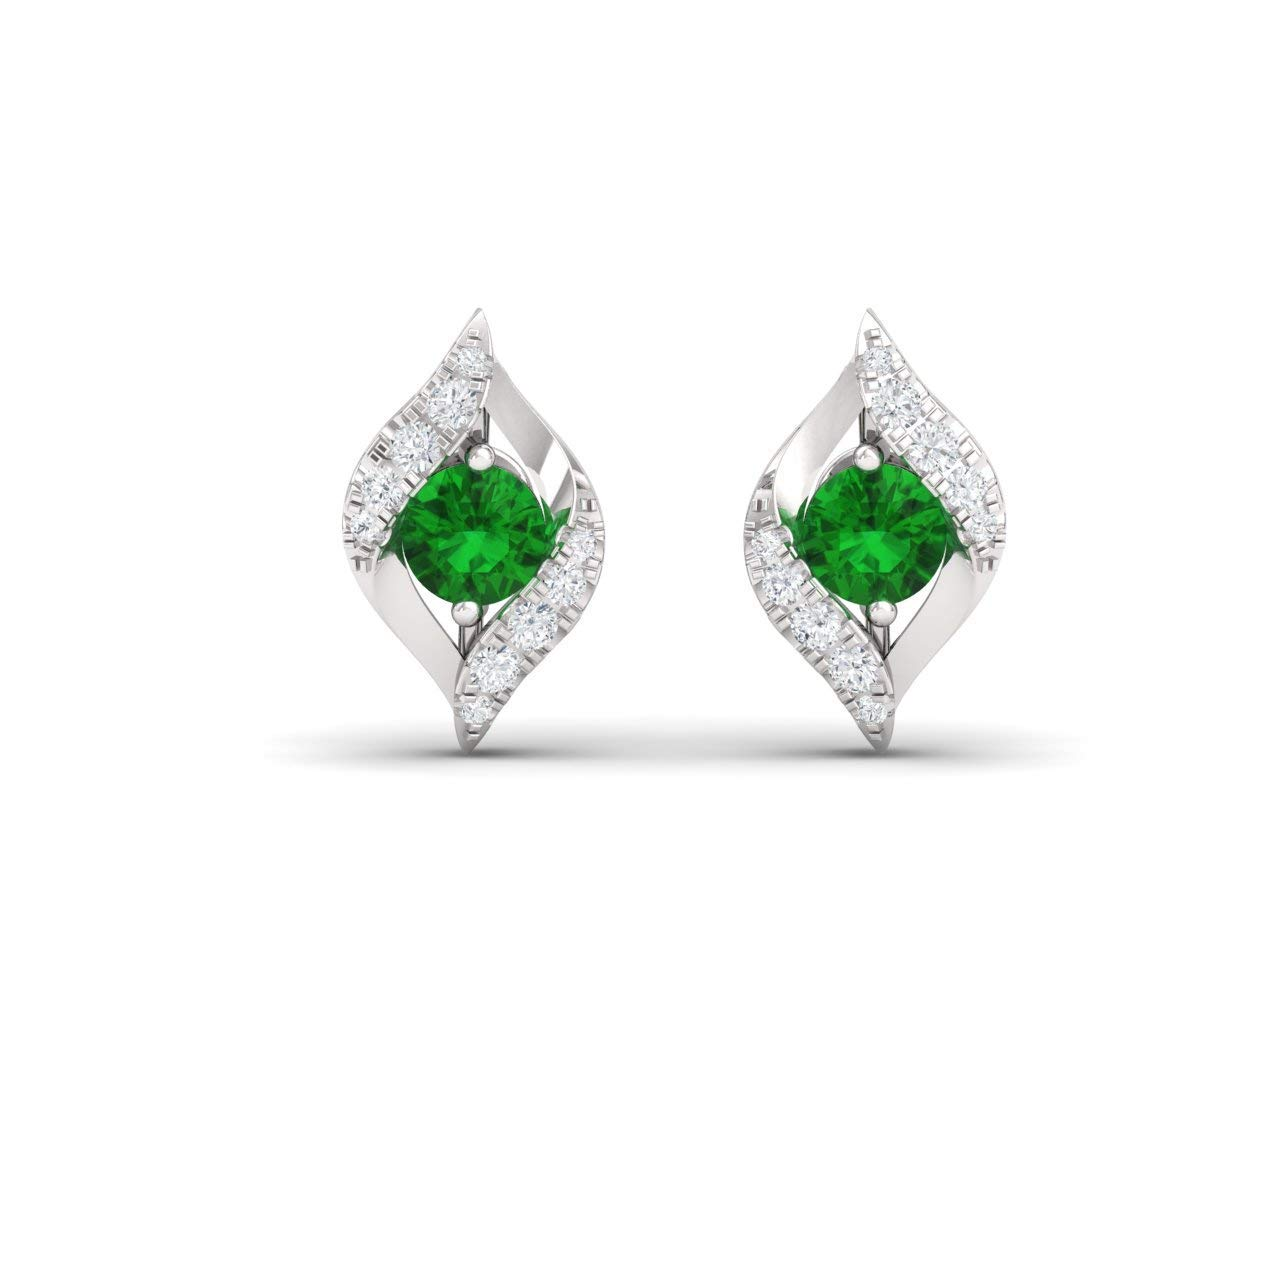 Diamondere Natural and Certified Gemstone and Diamond Bypass Petite Earrings in 14K White Gold | 0.39 Carat Stud Earrings for Women